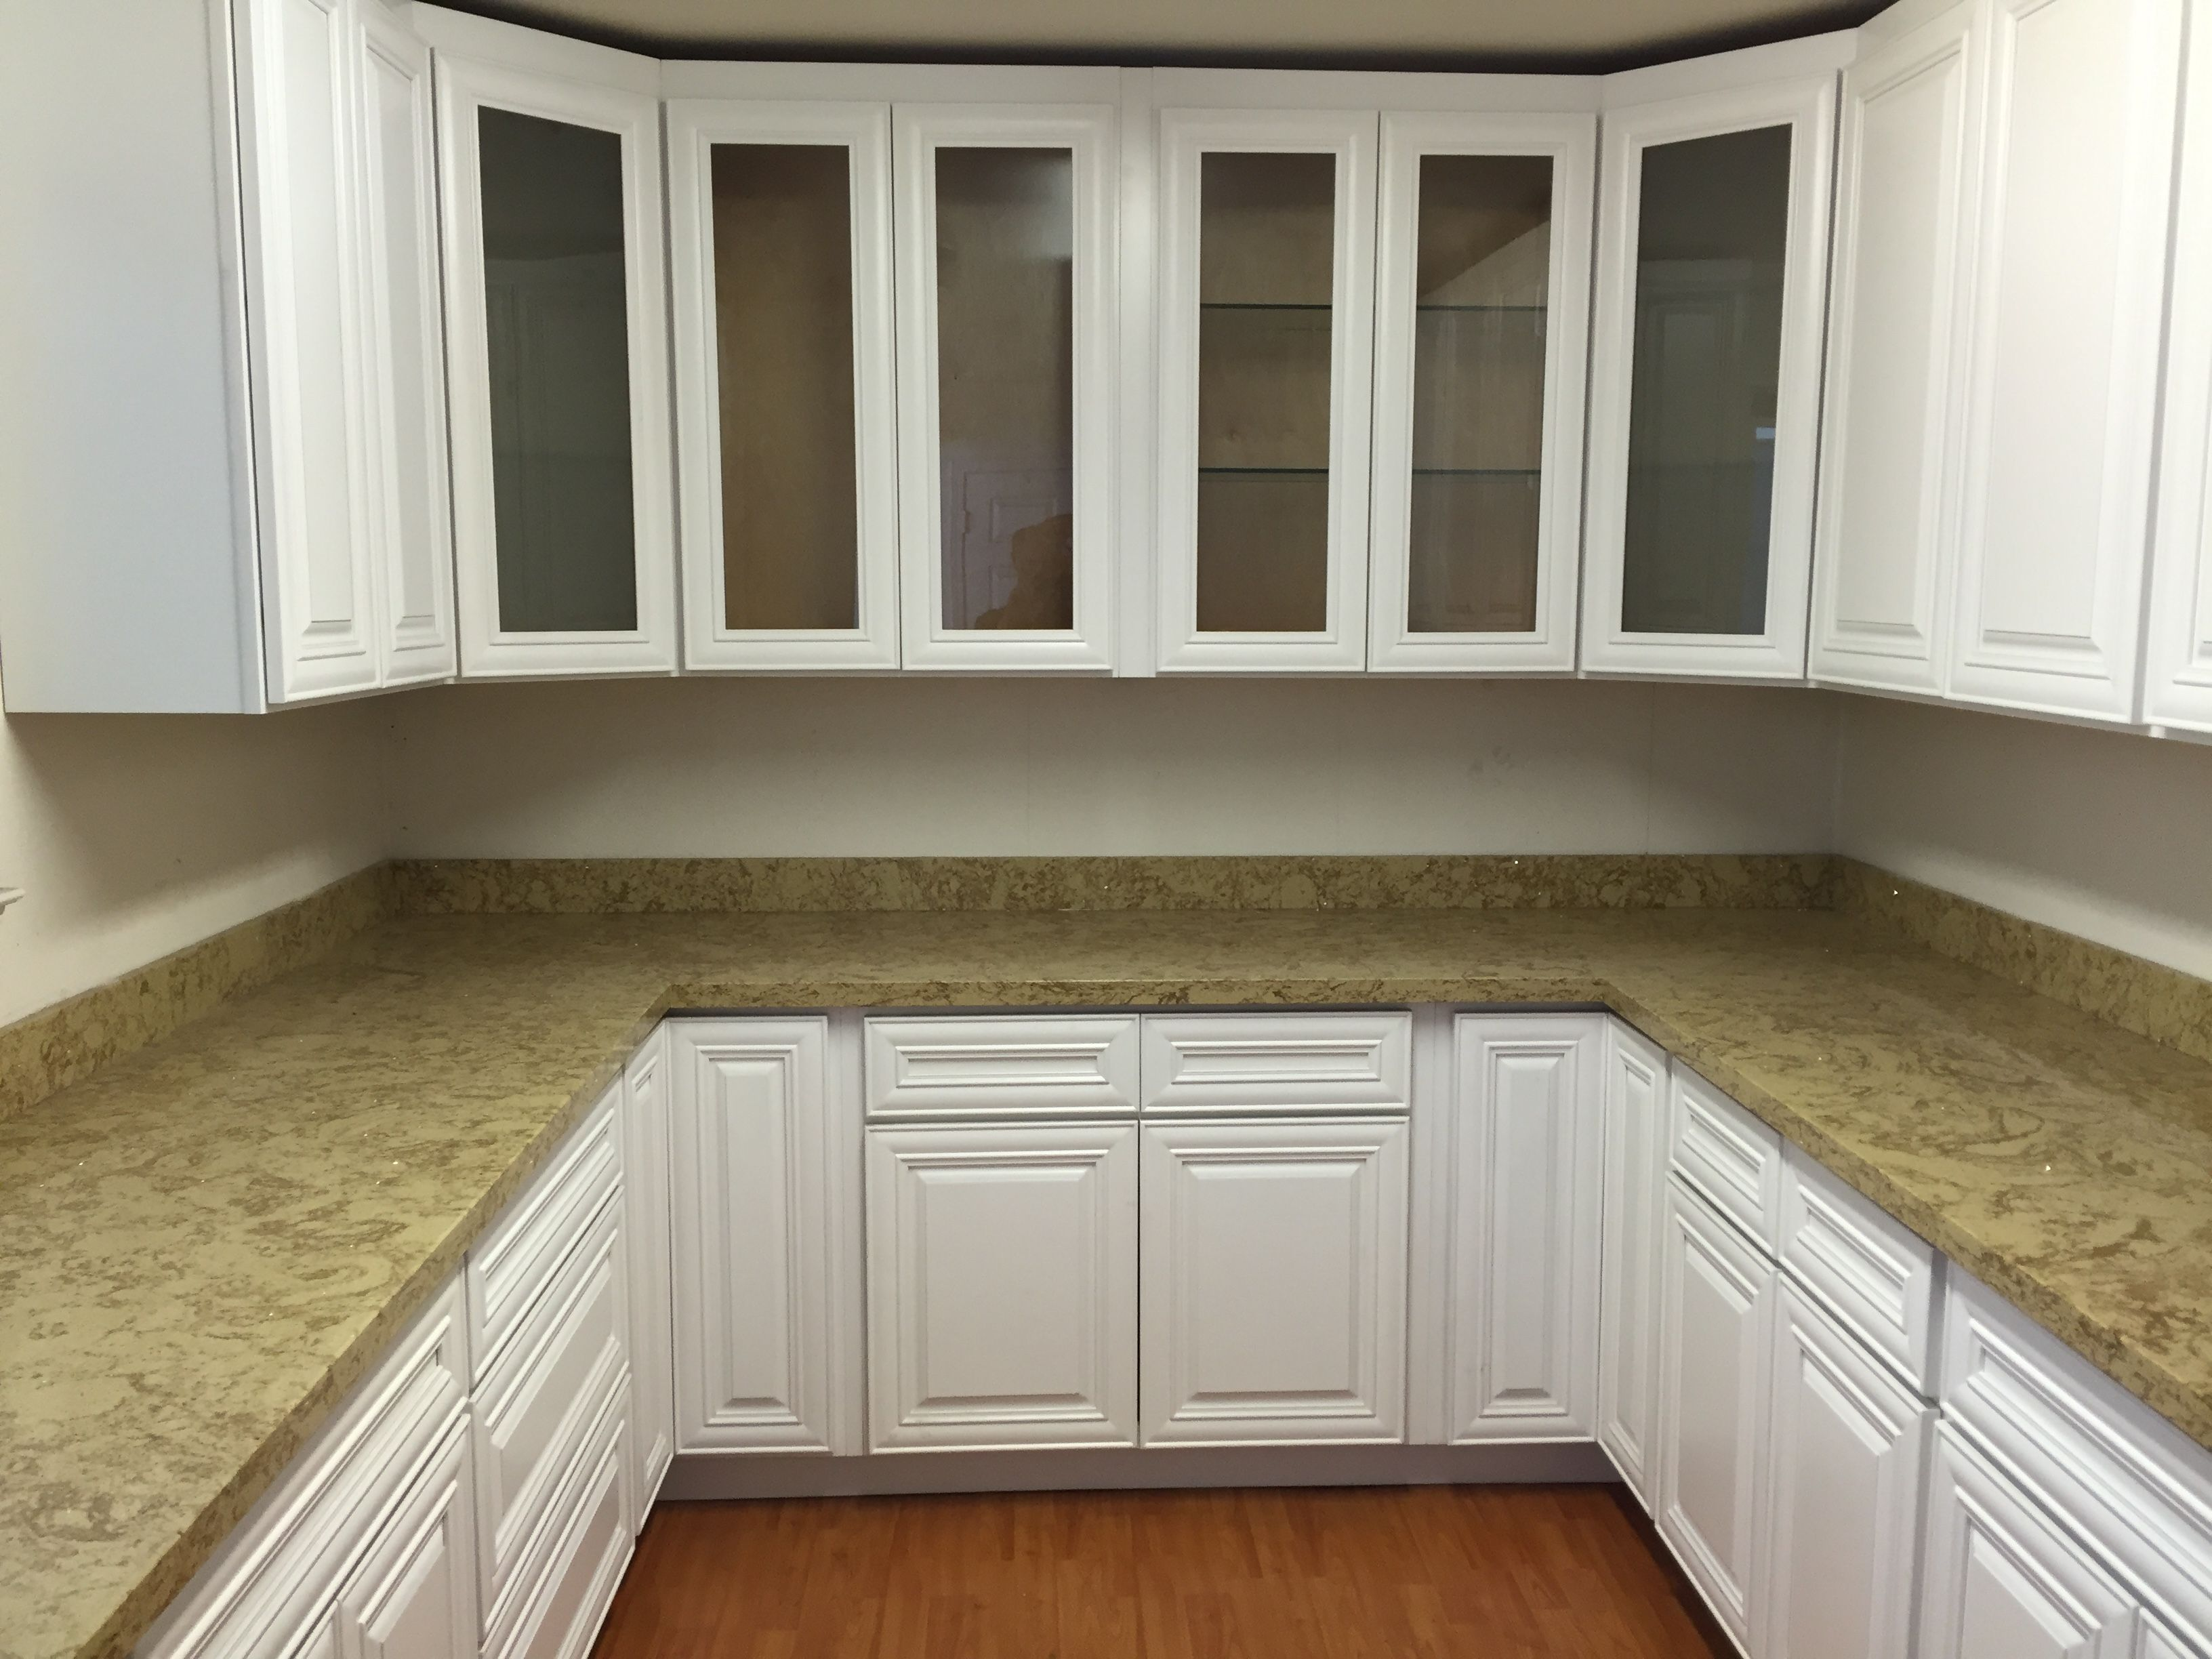 Image Result For Raised Panel Cabinets With Slab Drawers White Kitchen Custom Kitchen Island Custom Kitchen Cabinets Raised Panel Cabinets